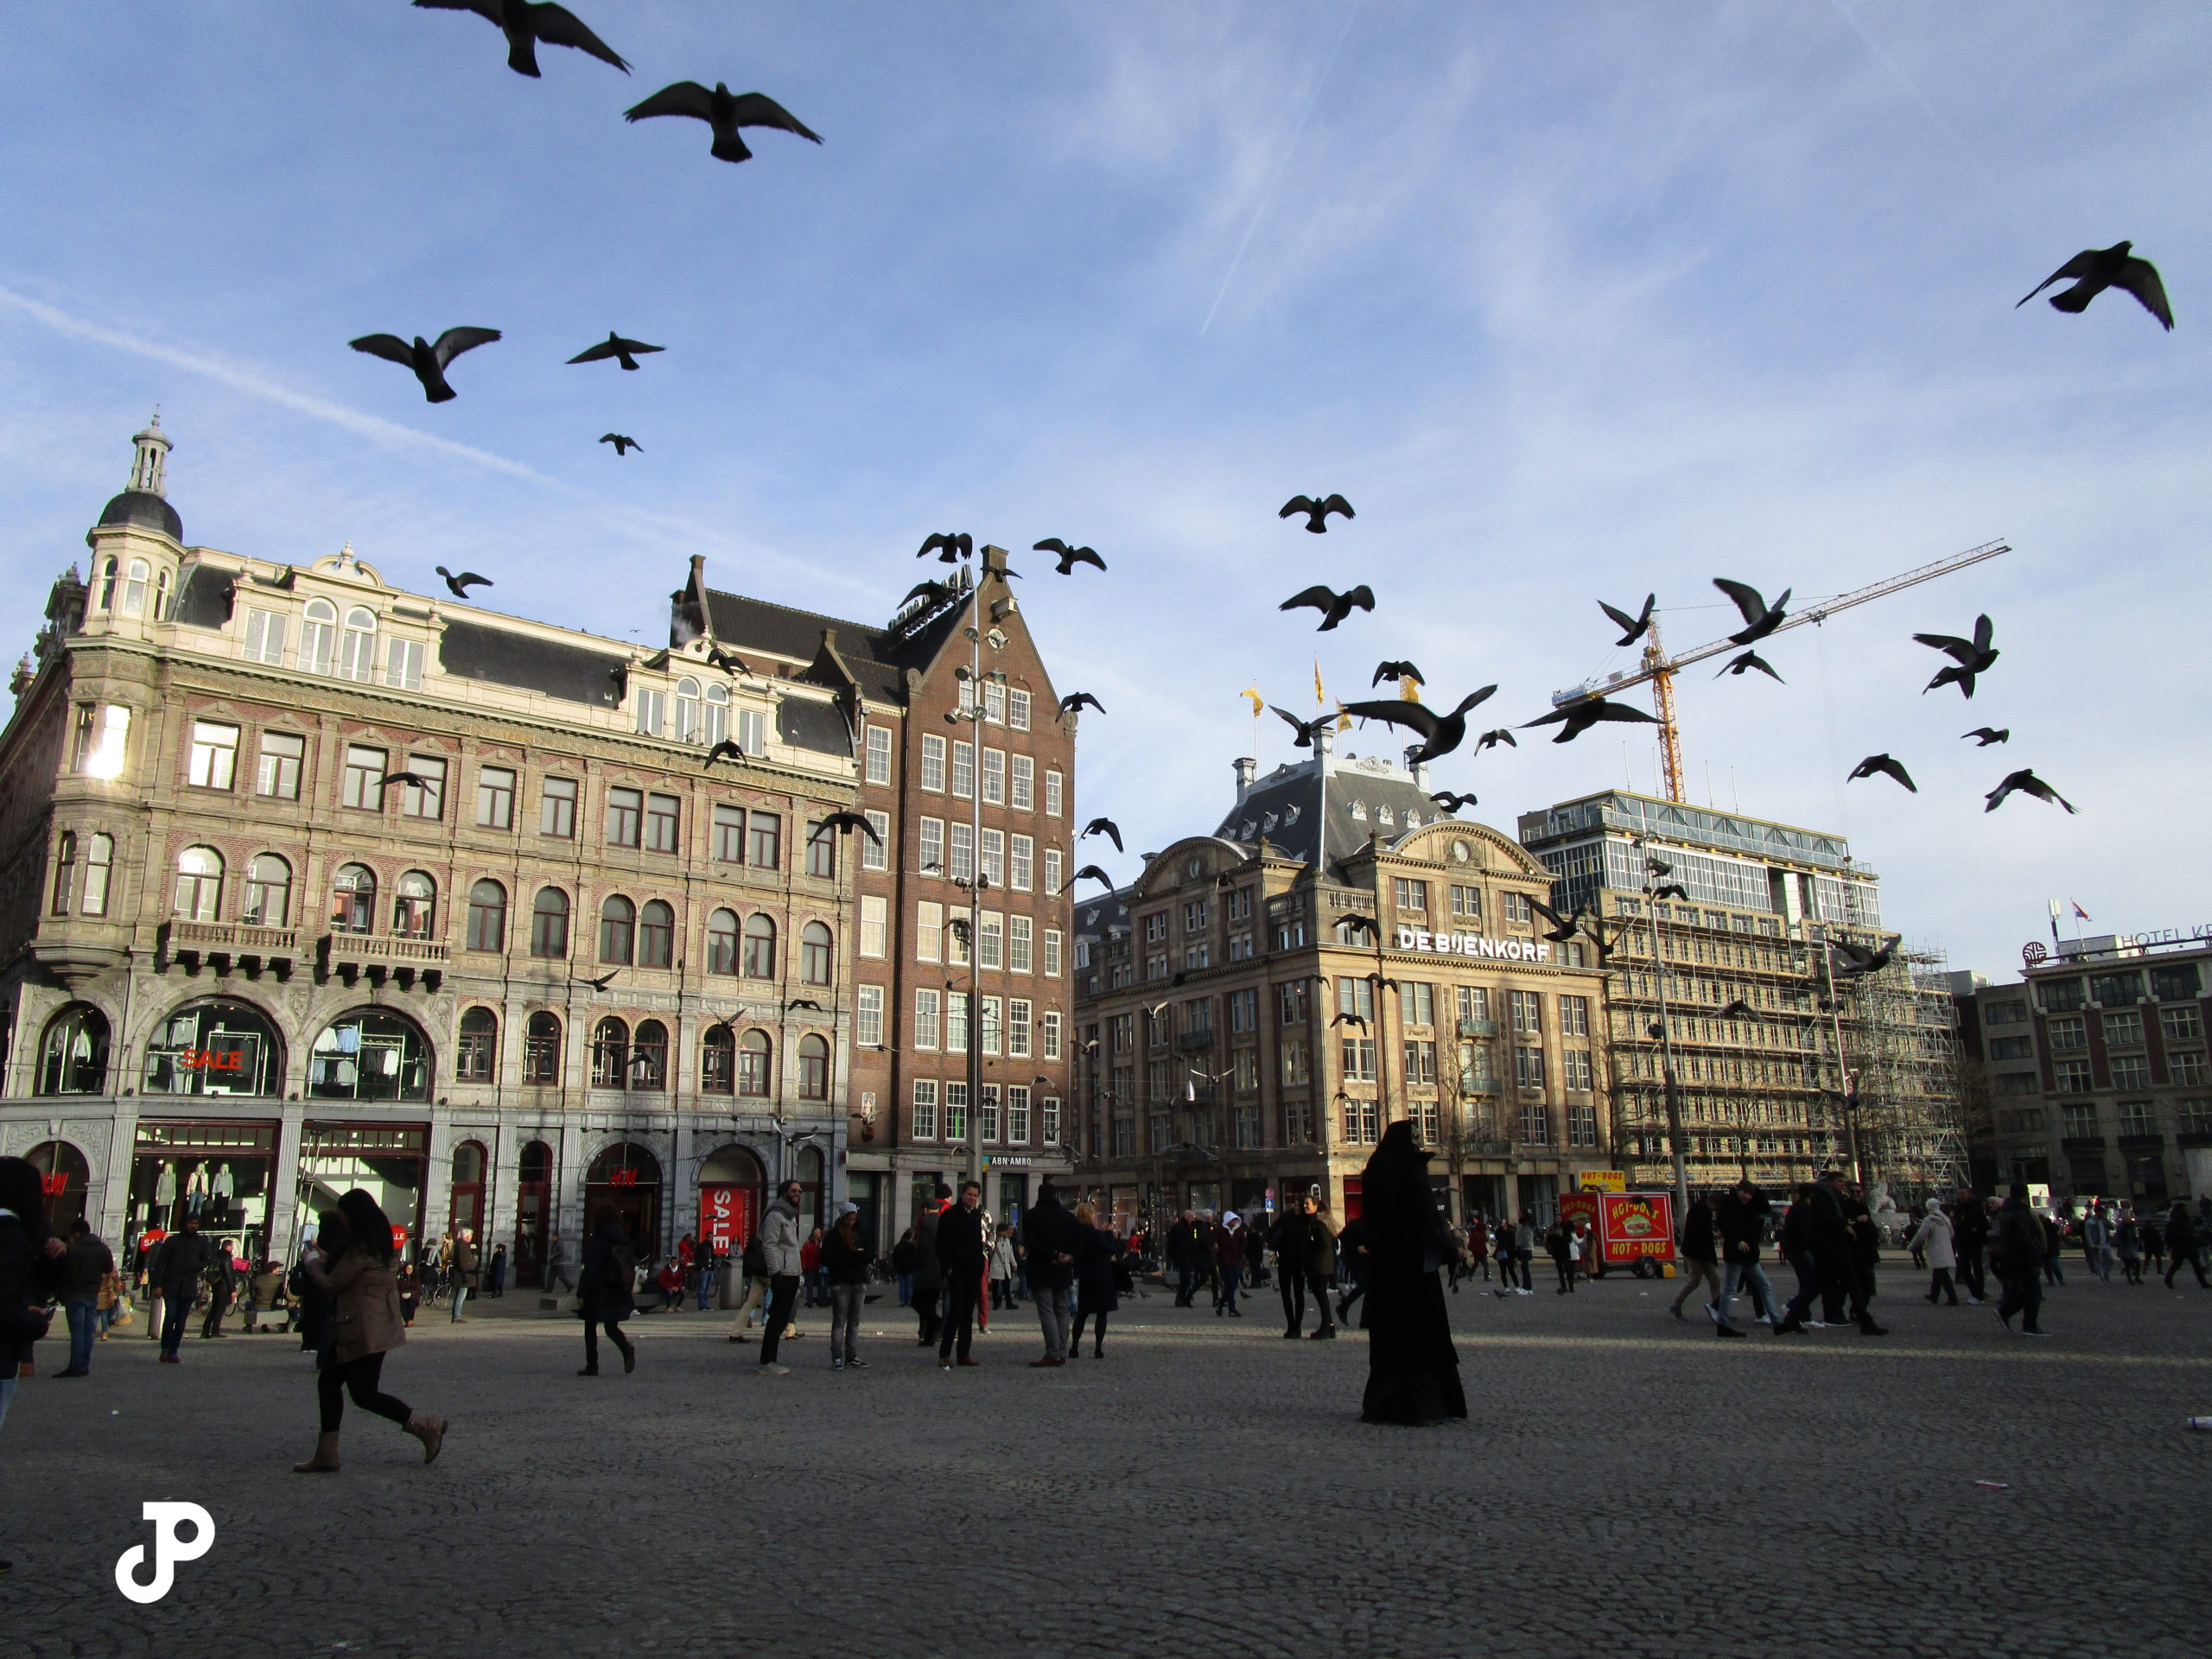 a flock of pidgeons flying over a crowd in Dam Square